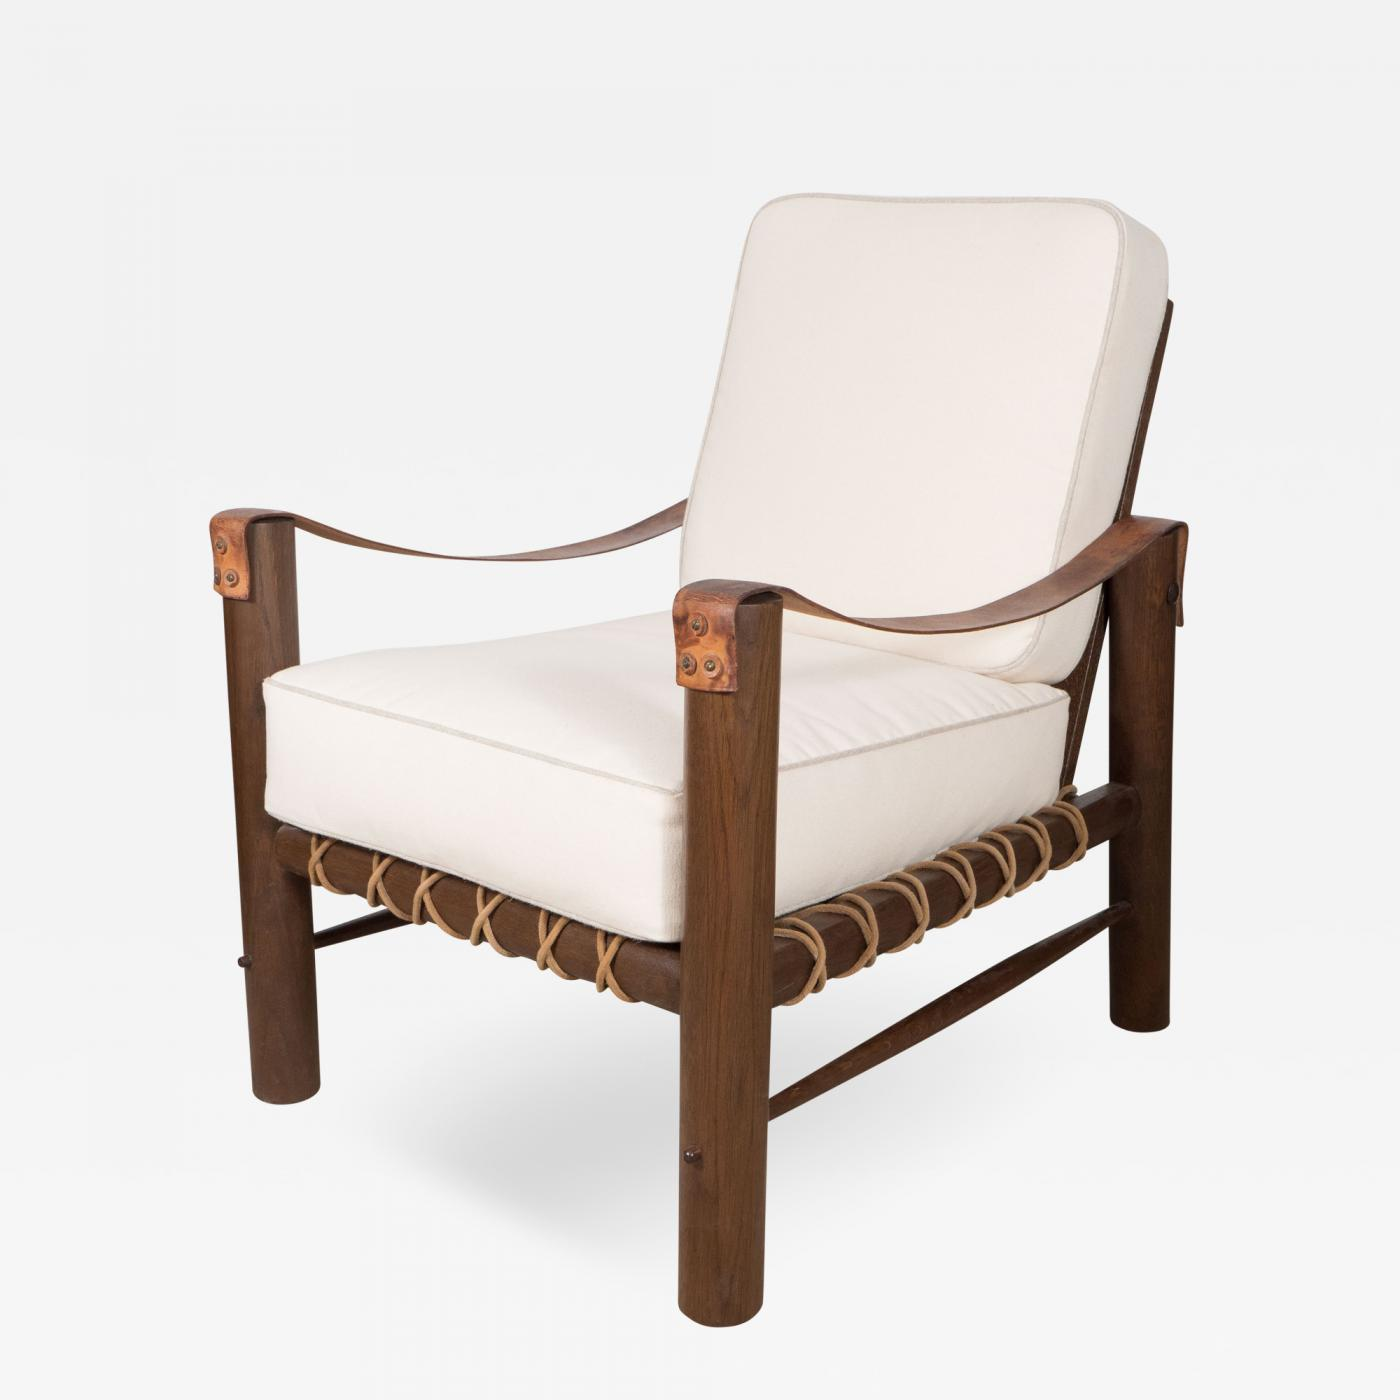 Delicieux Listings / Furniture / Seating / Armchairs · French African Inspired ...